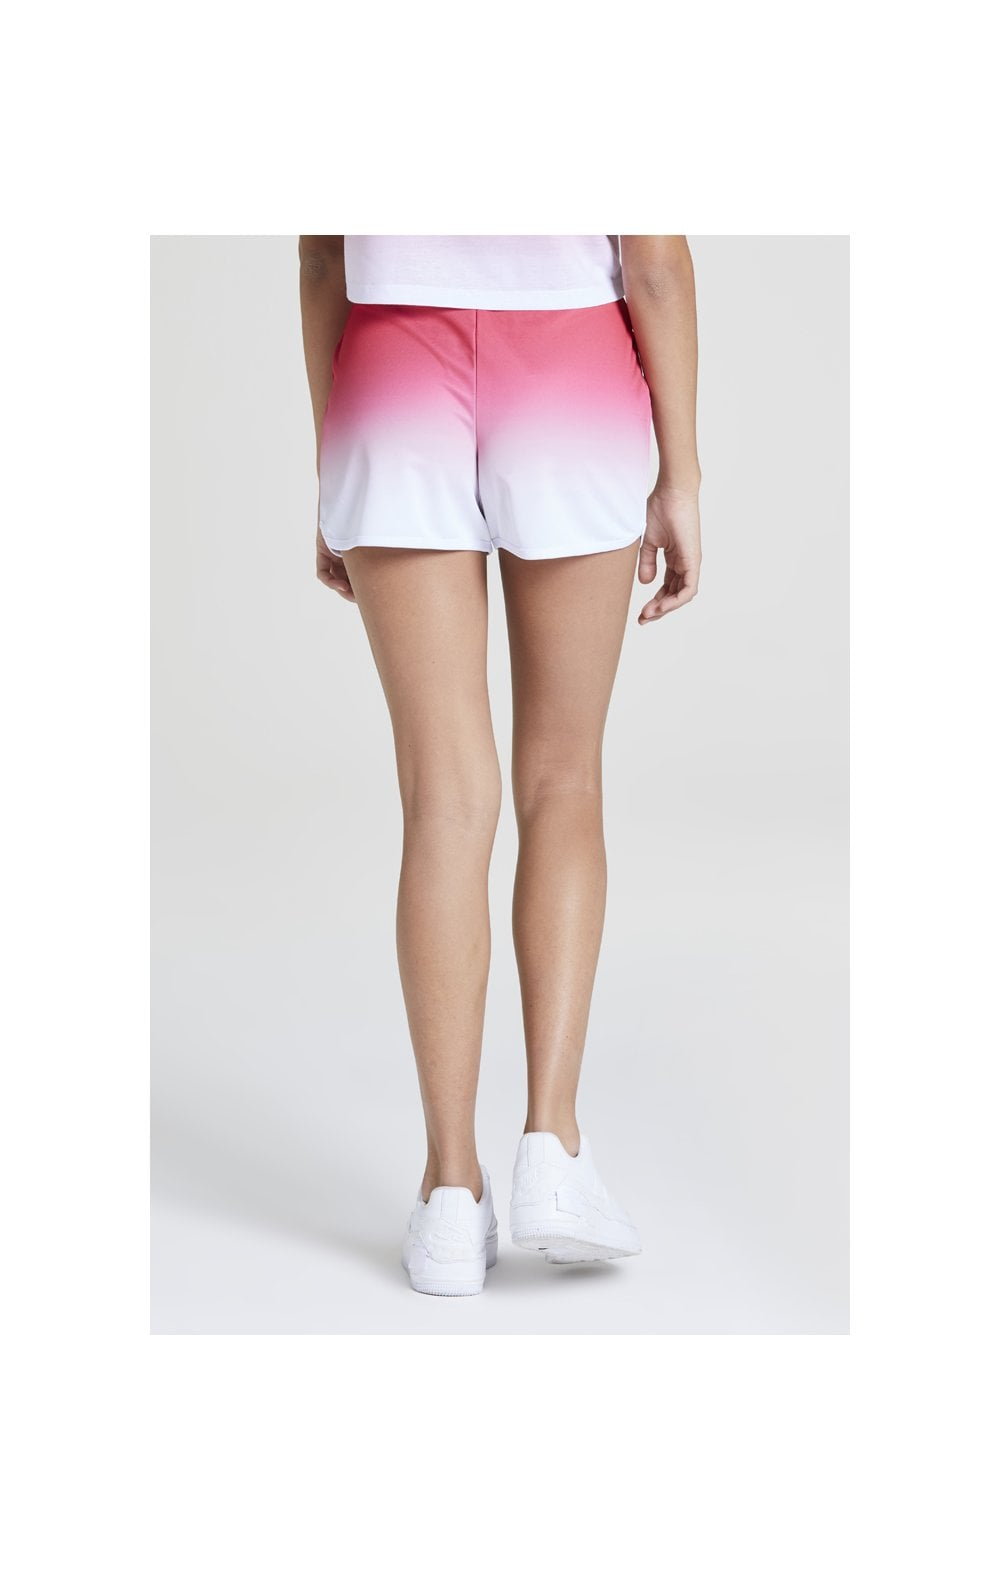 Load image into Gallery viewer, Illusive London Fade Shorts – Pink & White (6)